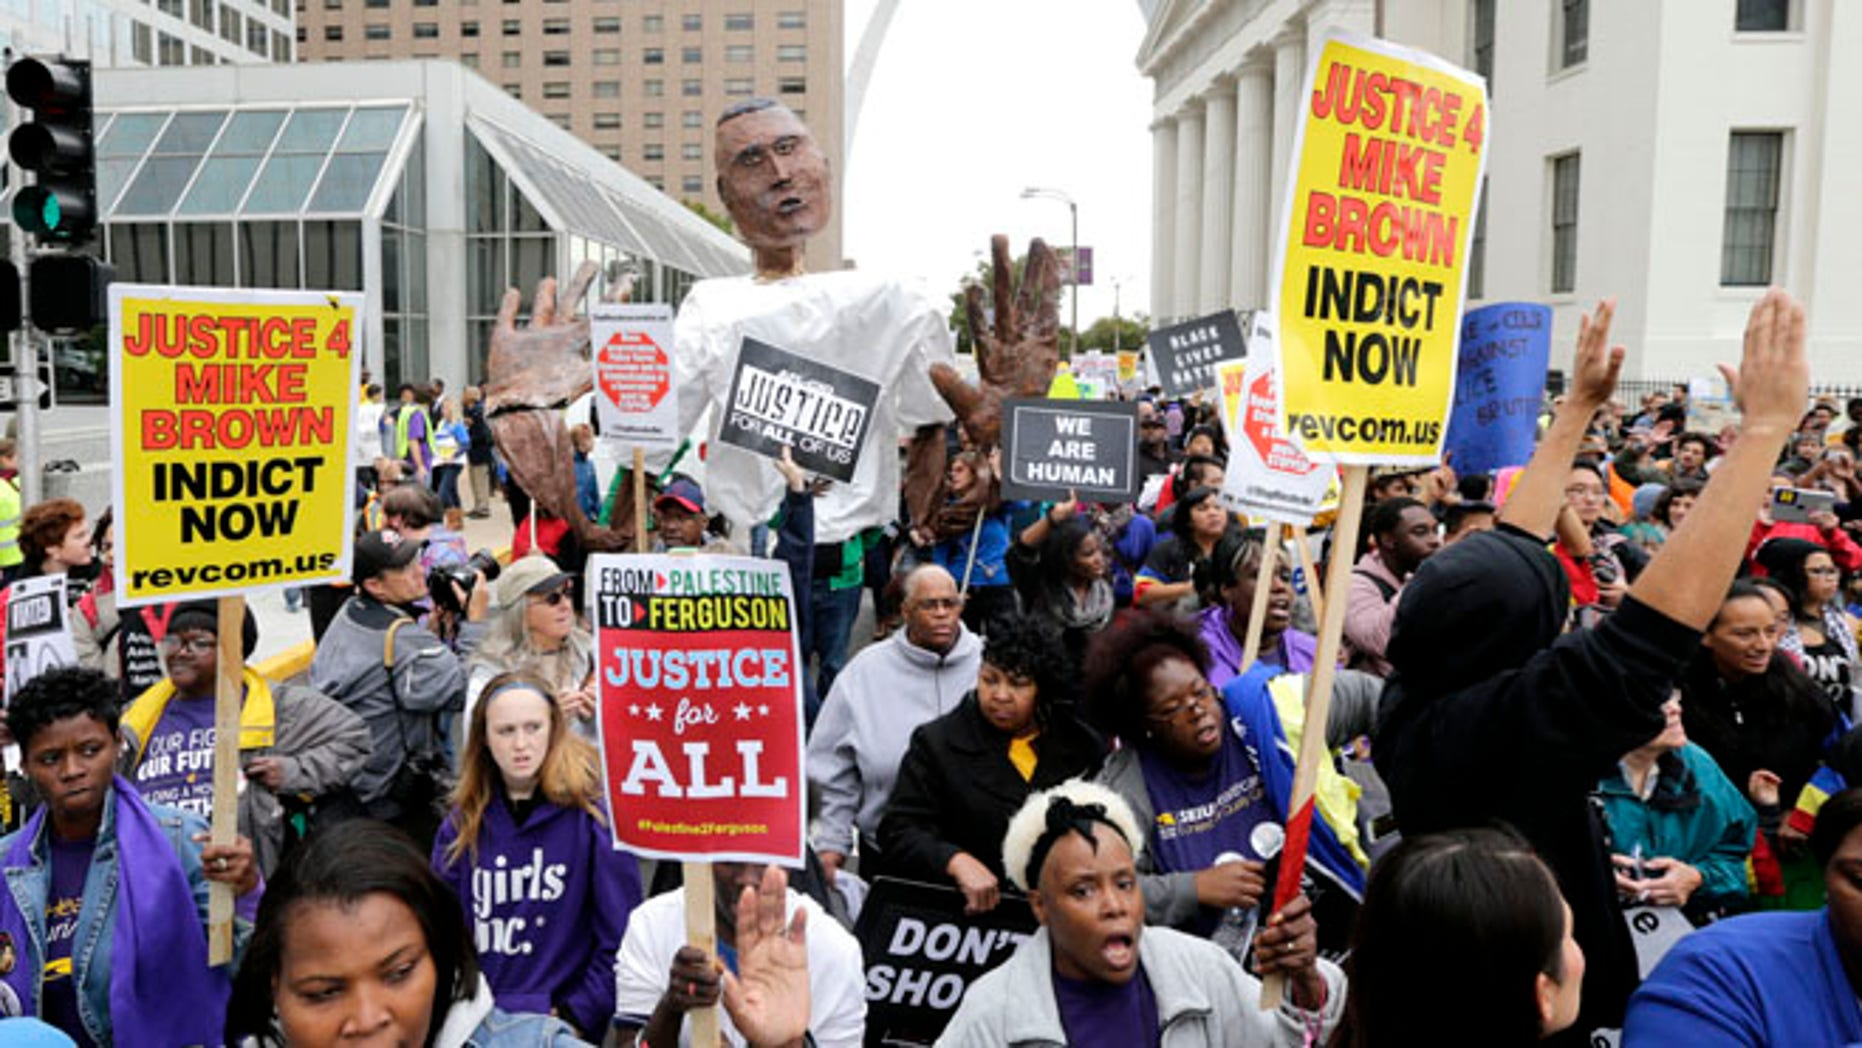 Oct. 11, 2014: Protesters march near the St. Louis Arch in St Louis. (AP)